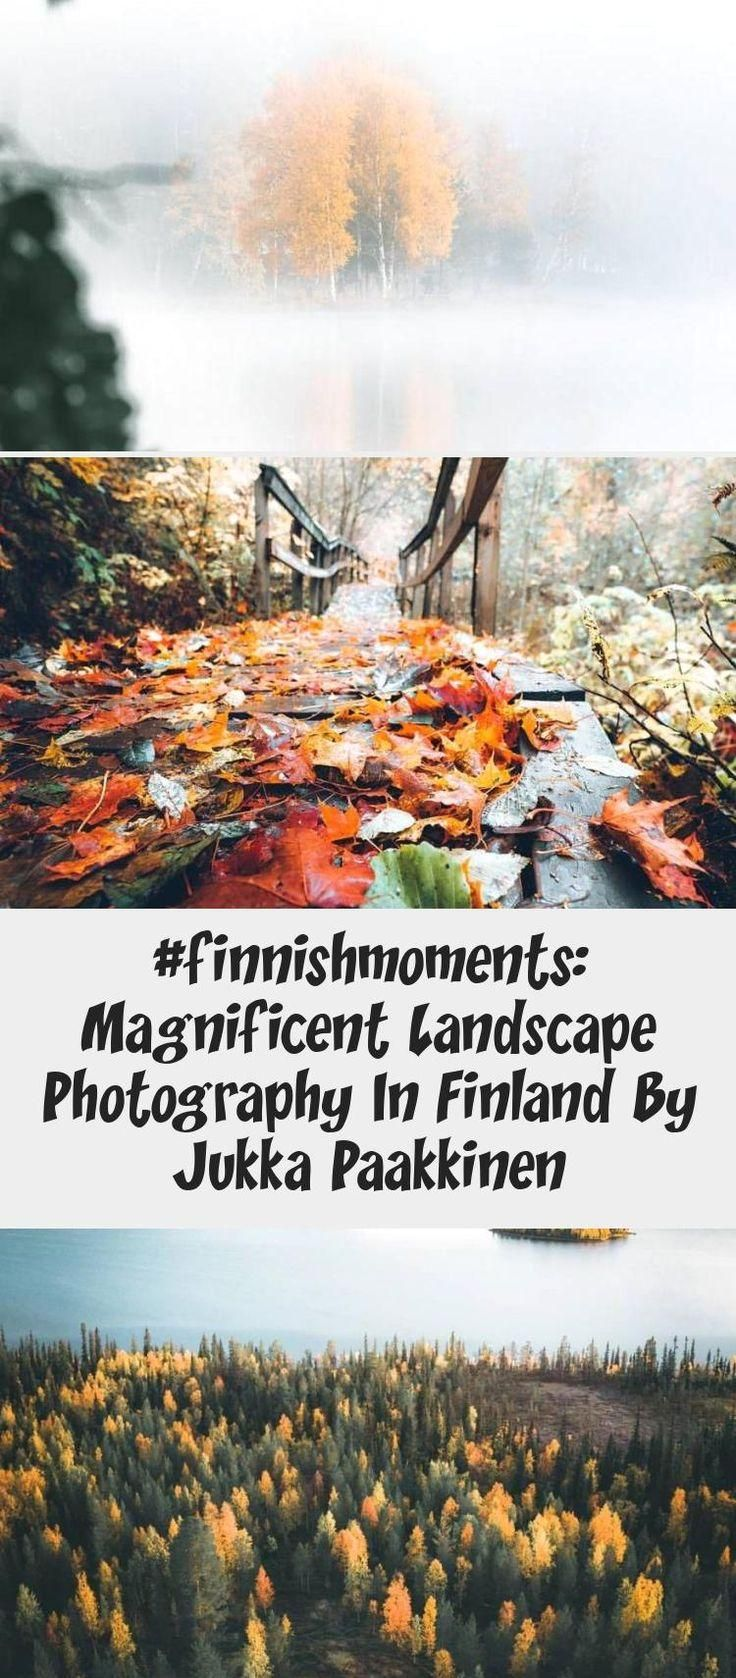 #finnishmoments: Magnificent Landscape Photography in Finland by Jukka Paakkinen  #photography  #finnishmoments  #Finland  #landscape  #travelgram  #LandscapePhotographyWoods  #LandscapePhotographyArt  #ChineseLandscapePhotography  #UnusualLandscapePhotography  #LandscapePhotographyField